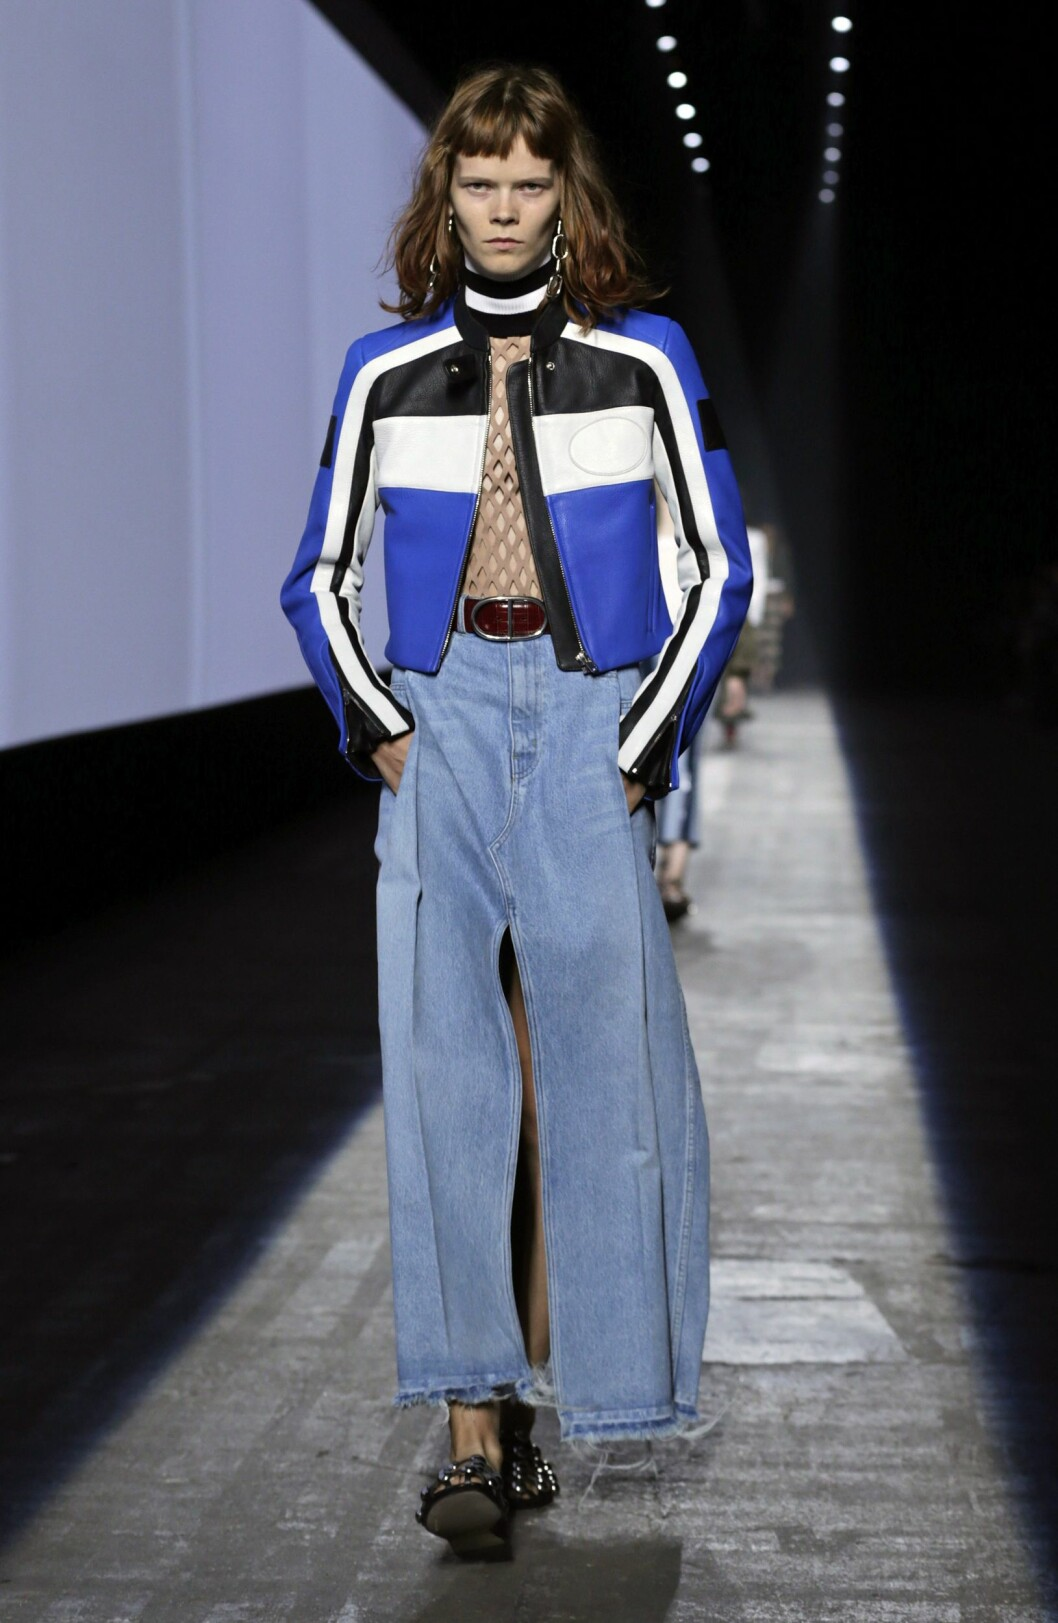 epa04928194 A model presents a creation from the Spring 2016 collection by Alexander Wang, during New York Fashion Week in New York, New York, USA, 12 September 2015. The Spring 2016 collections are presented from 10 to 17 September.  EPA/PETER FOLEY Foto: Epa